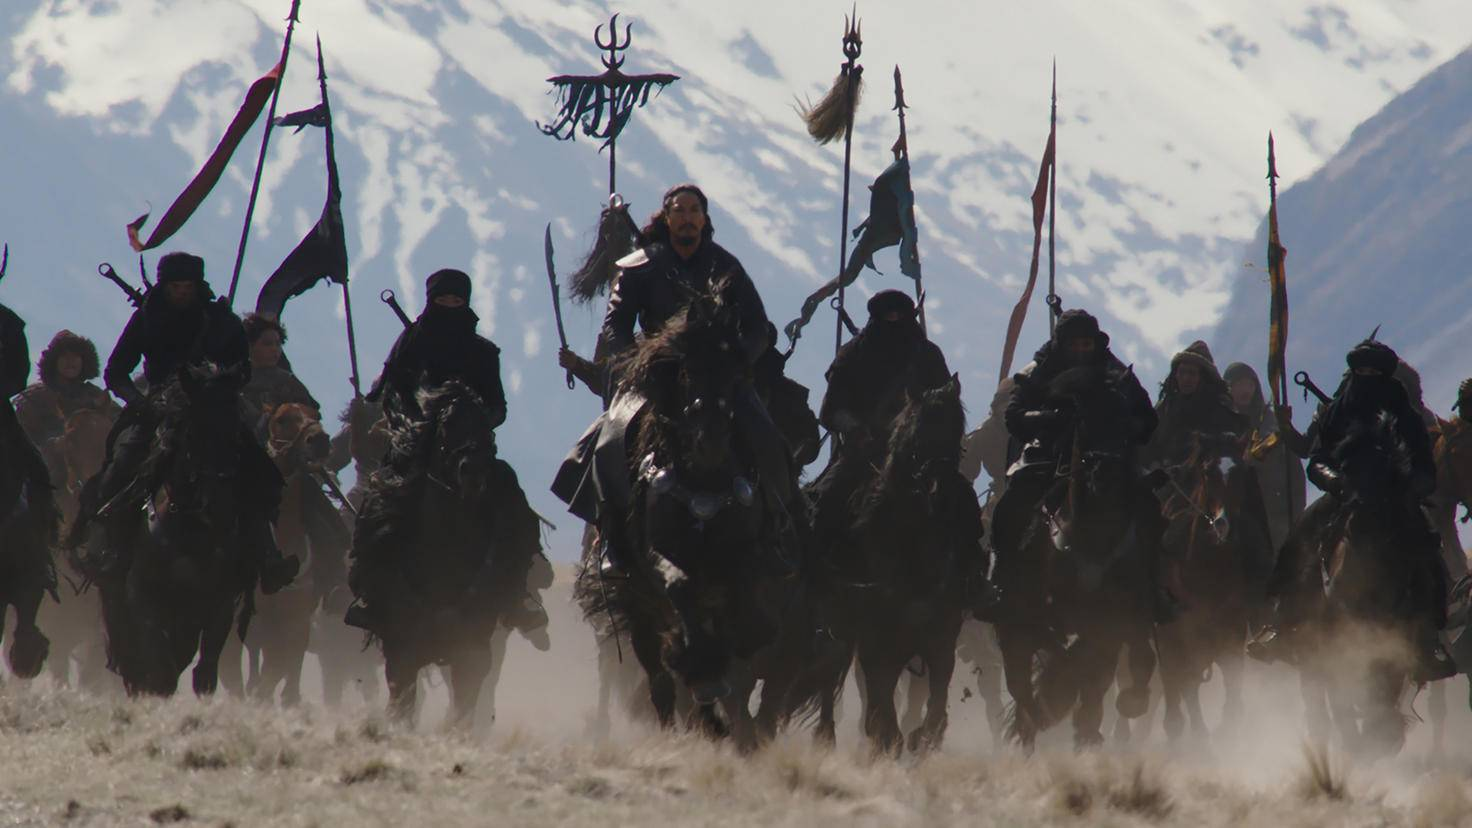 The northern invaders attack.